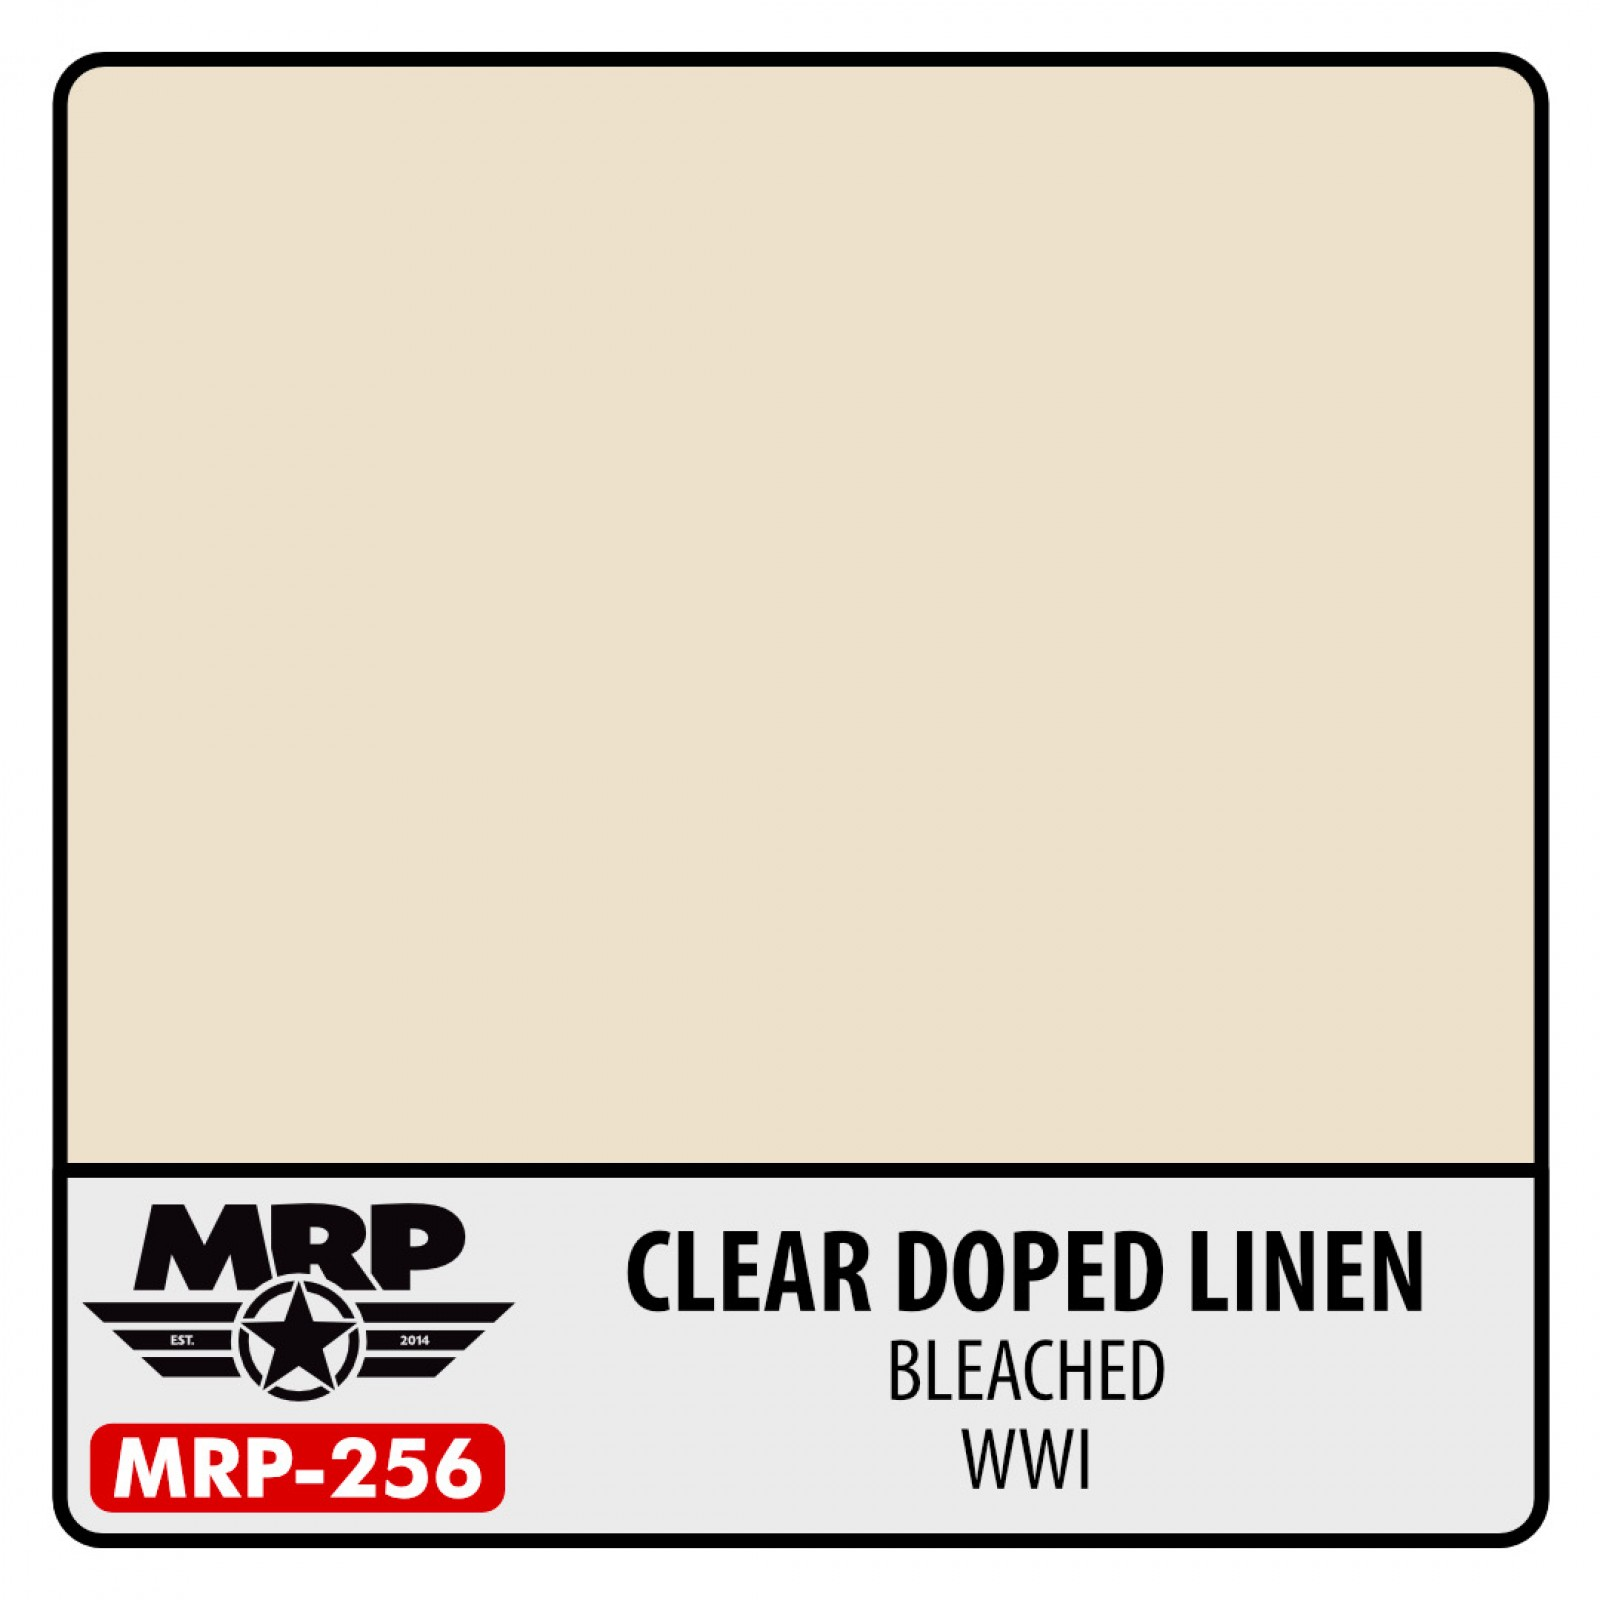 MRP-256    CDL  BLEACHED